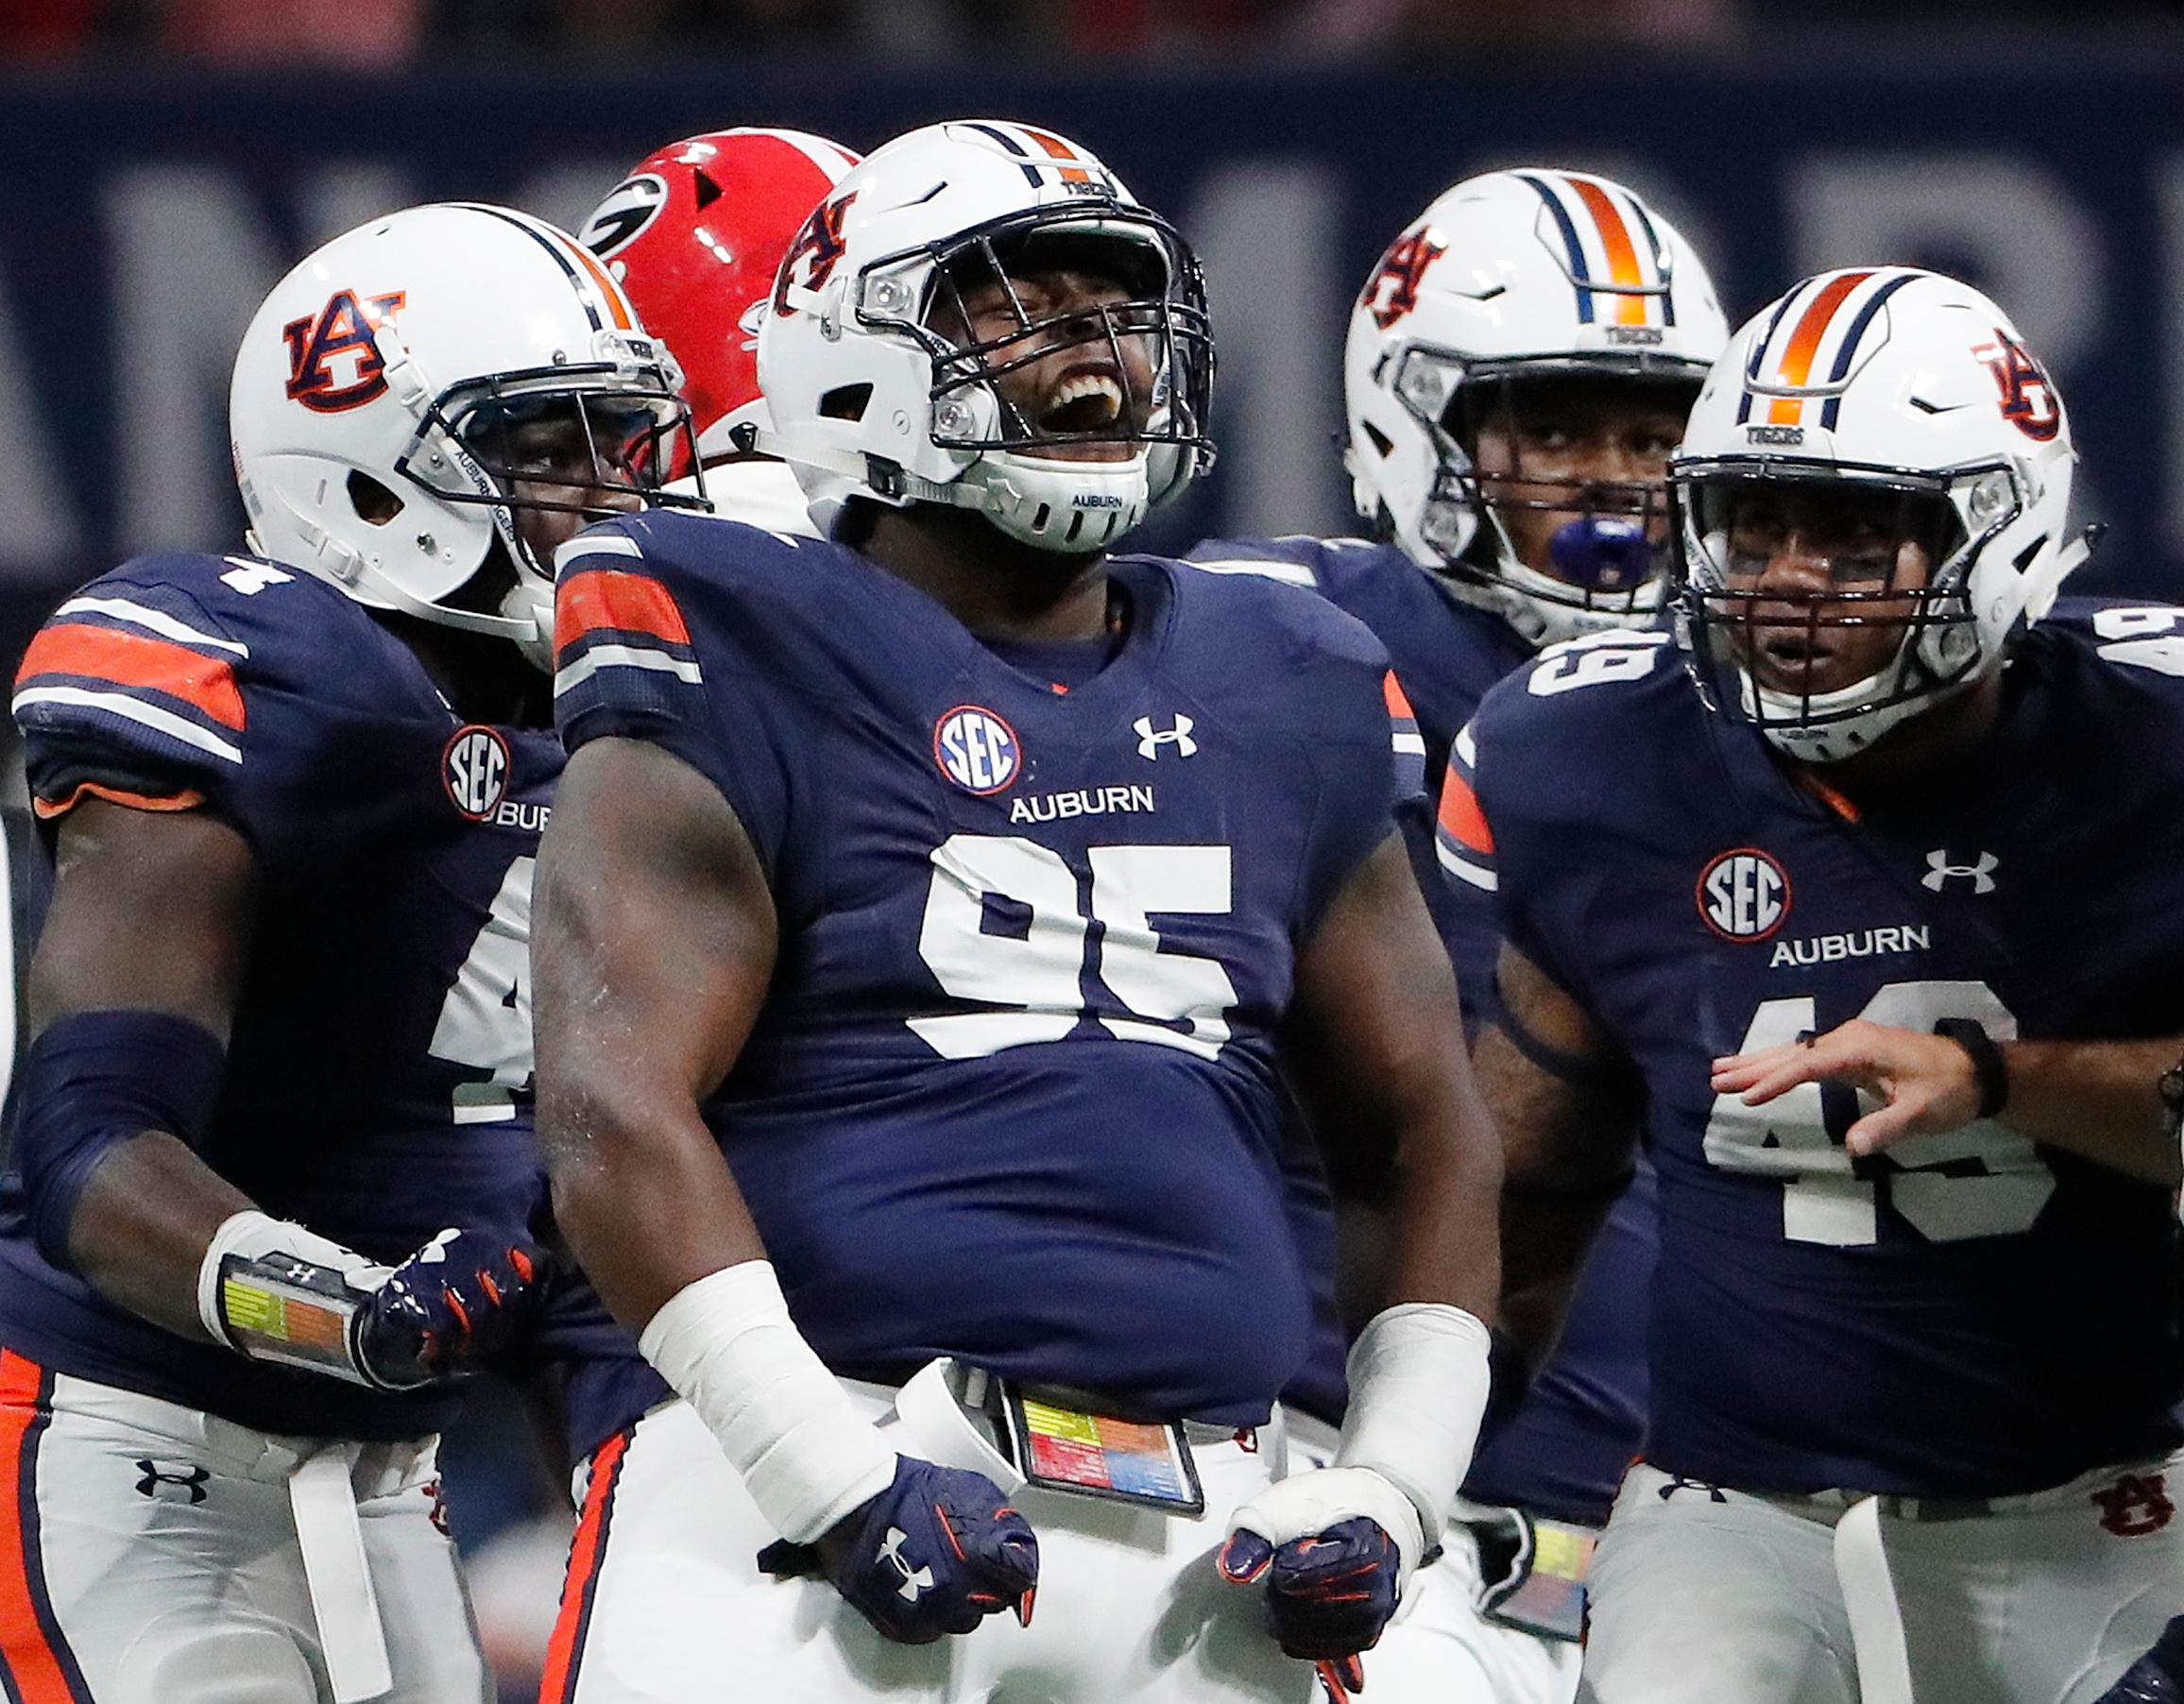 Auburn defensive lineman Dontavius Russell (95) celebrates tackling Georgia quarterback Jake Fromm during the first half of the Southeastern Conference championship NCAA college football game, Saturday, Dec. 2, 2017, in Atlanta. (AP Photo/David Goldman)